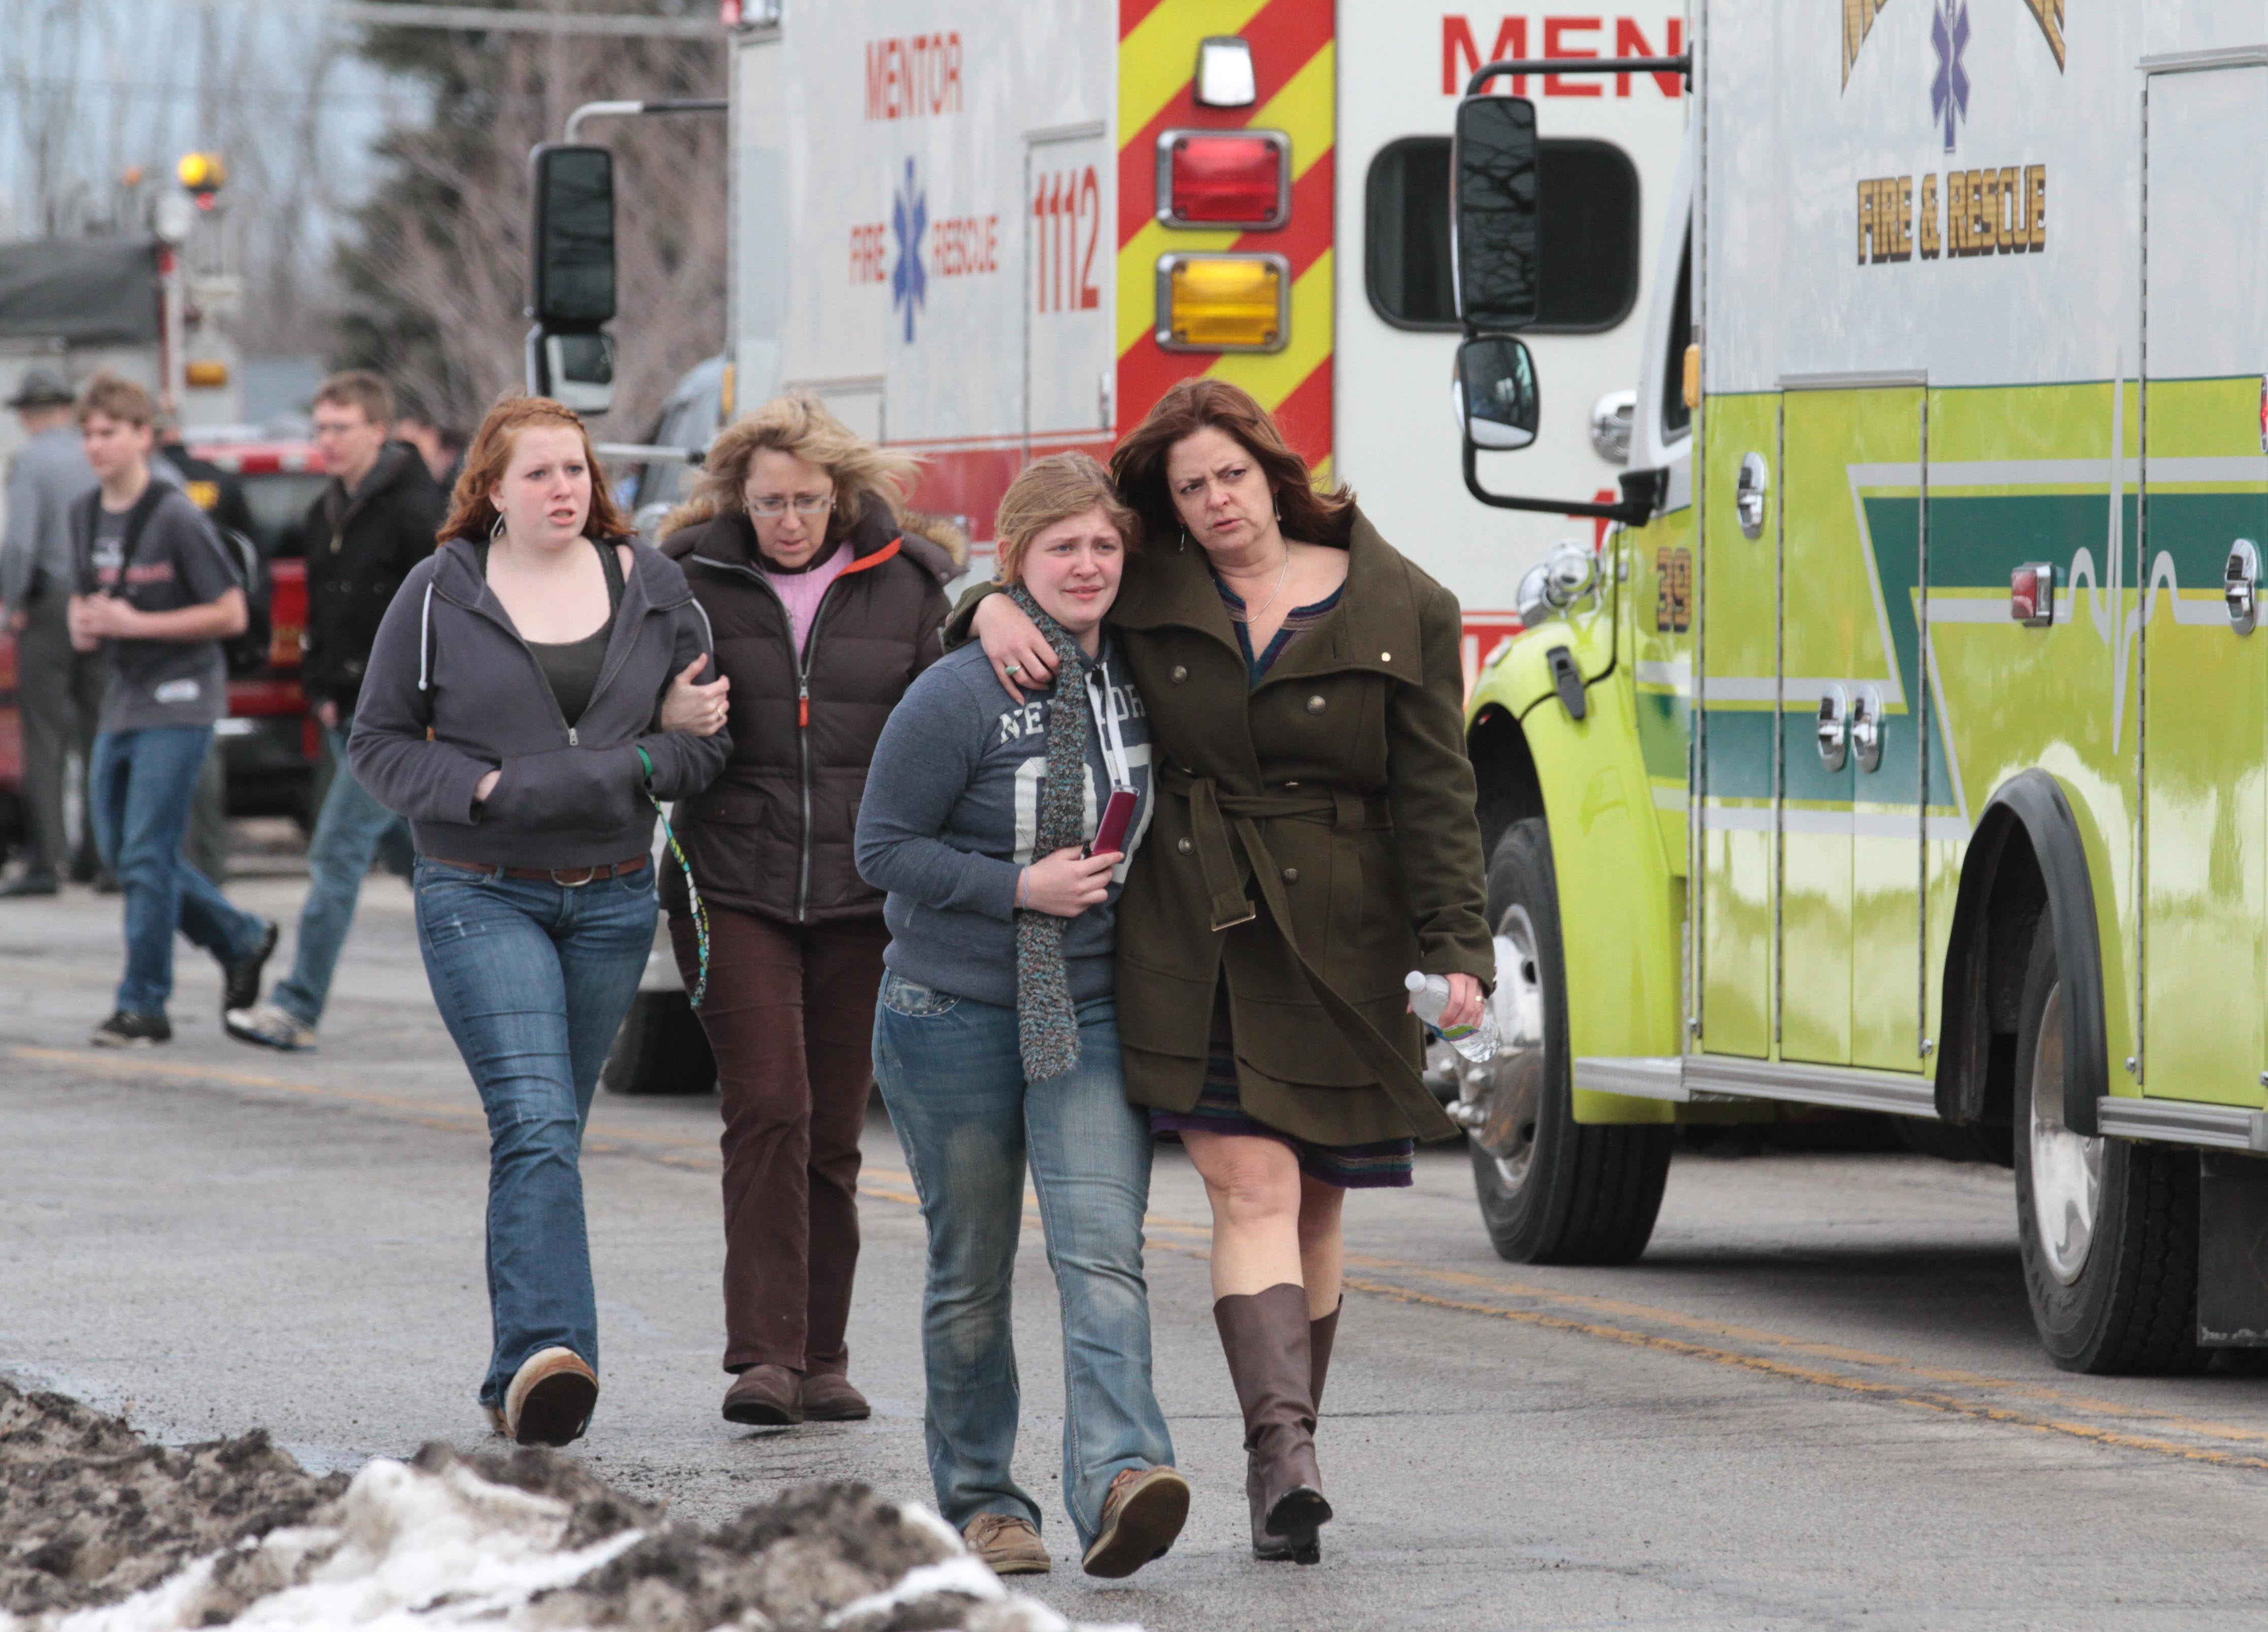 Ohio student kills 2, wounds 3 at school - The Blade